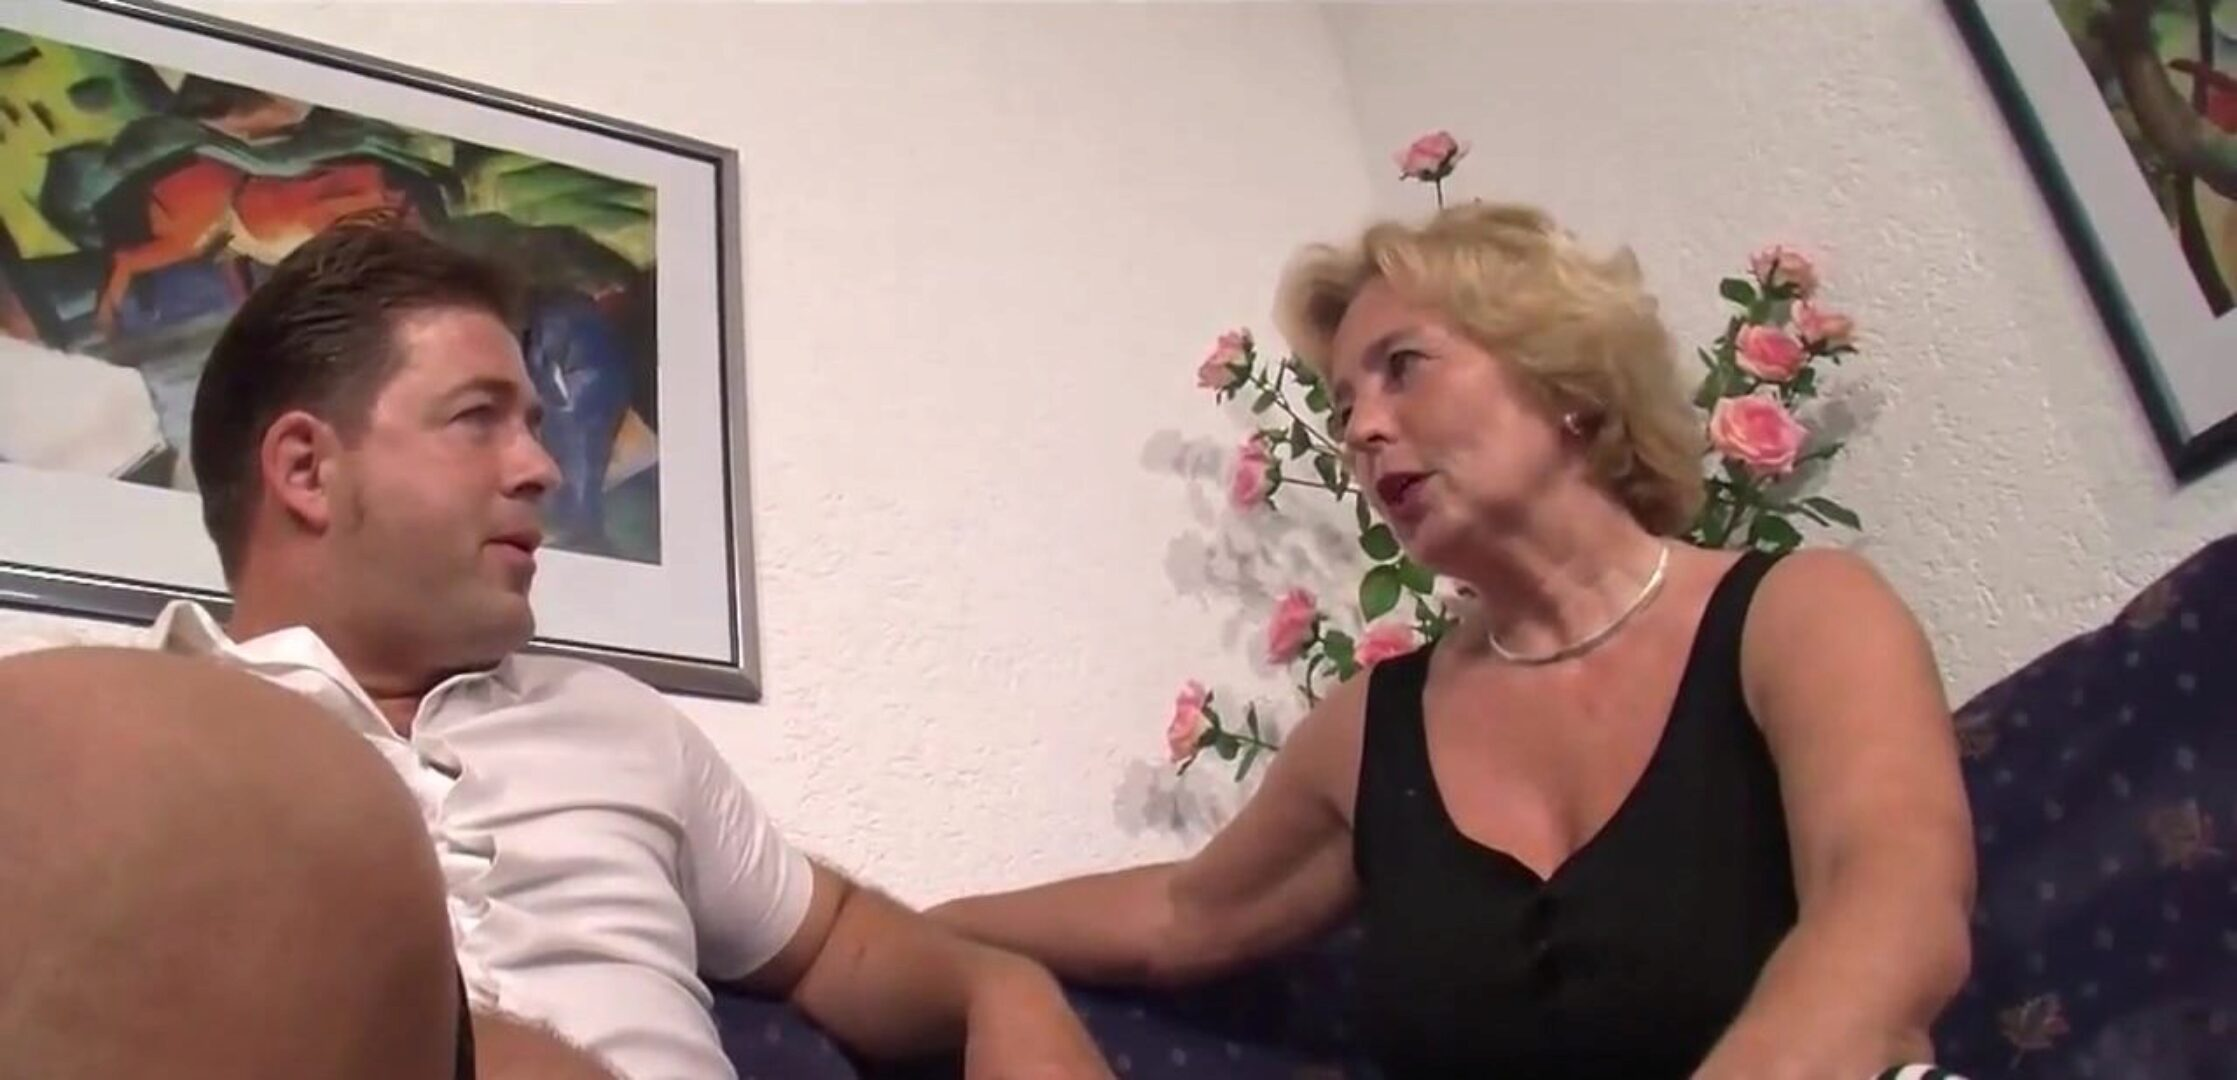 FEAR THE MONSTER GRANNY -B$R Horny German Family in total HD.